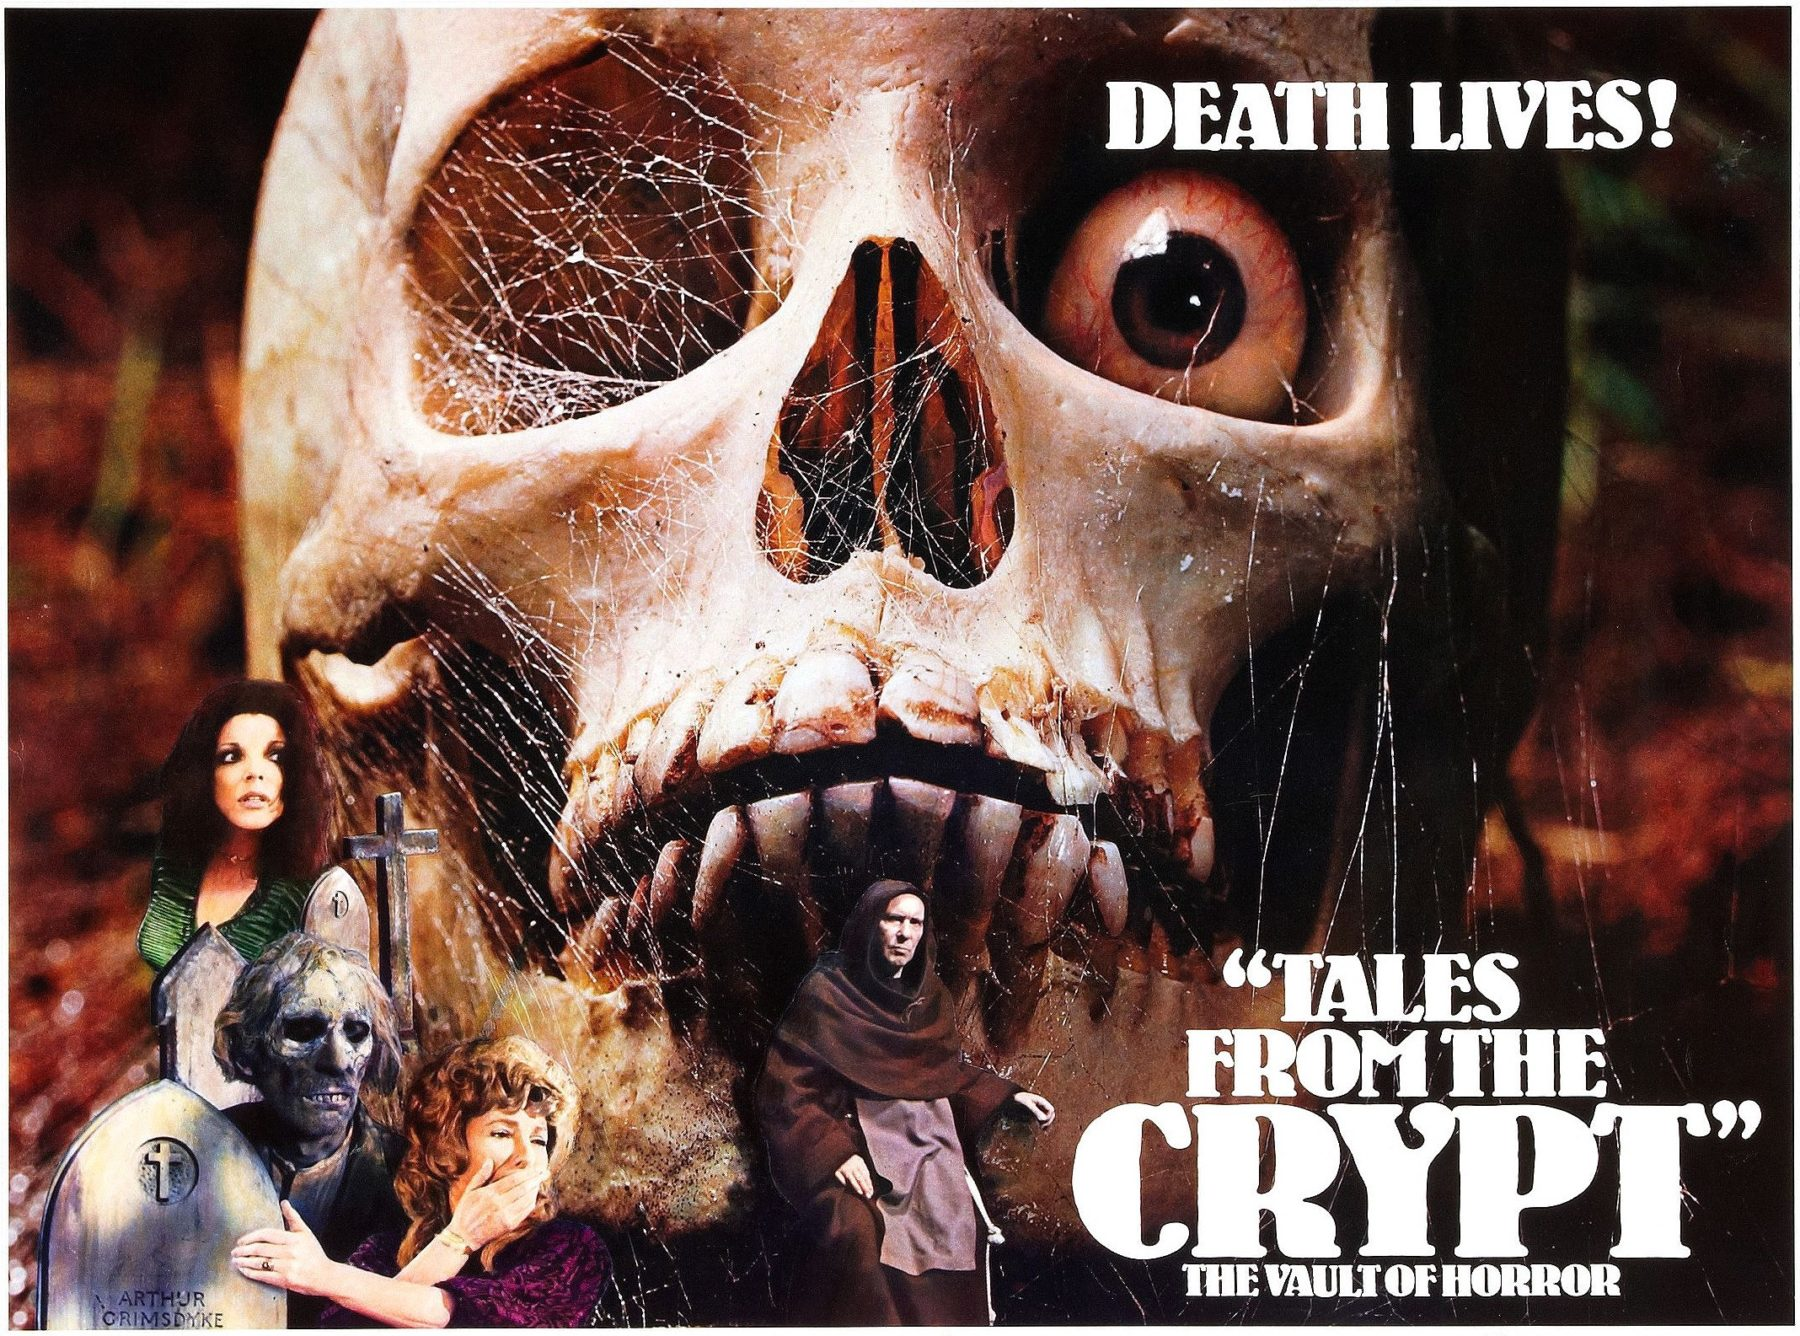 tales_from_the_crypt.jpg